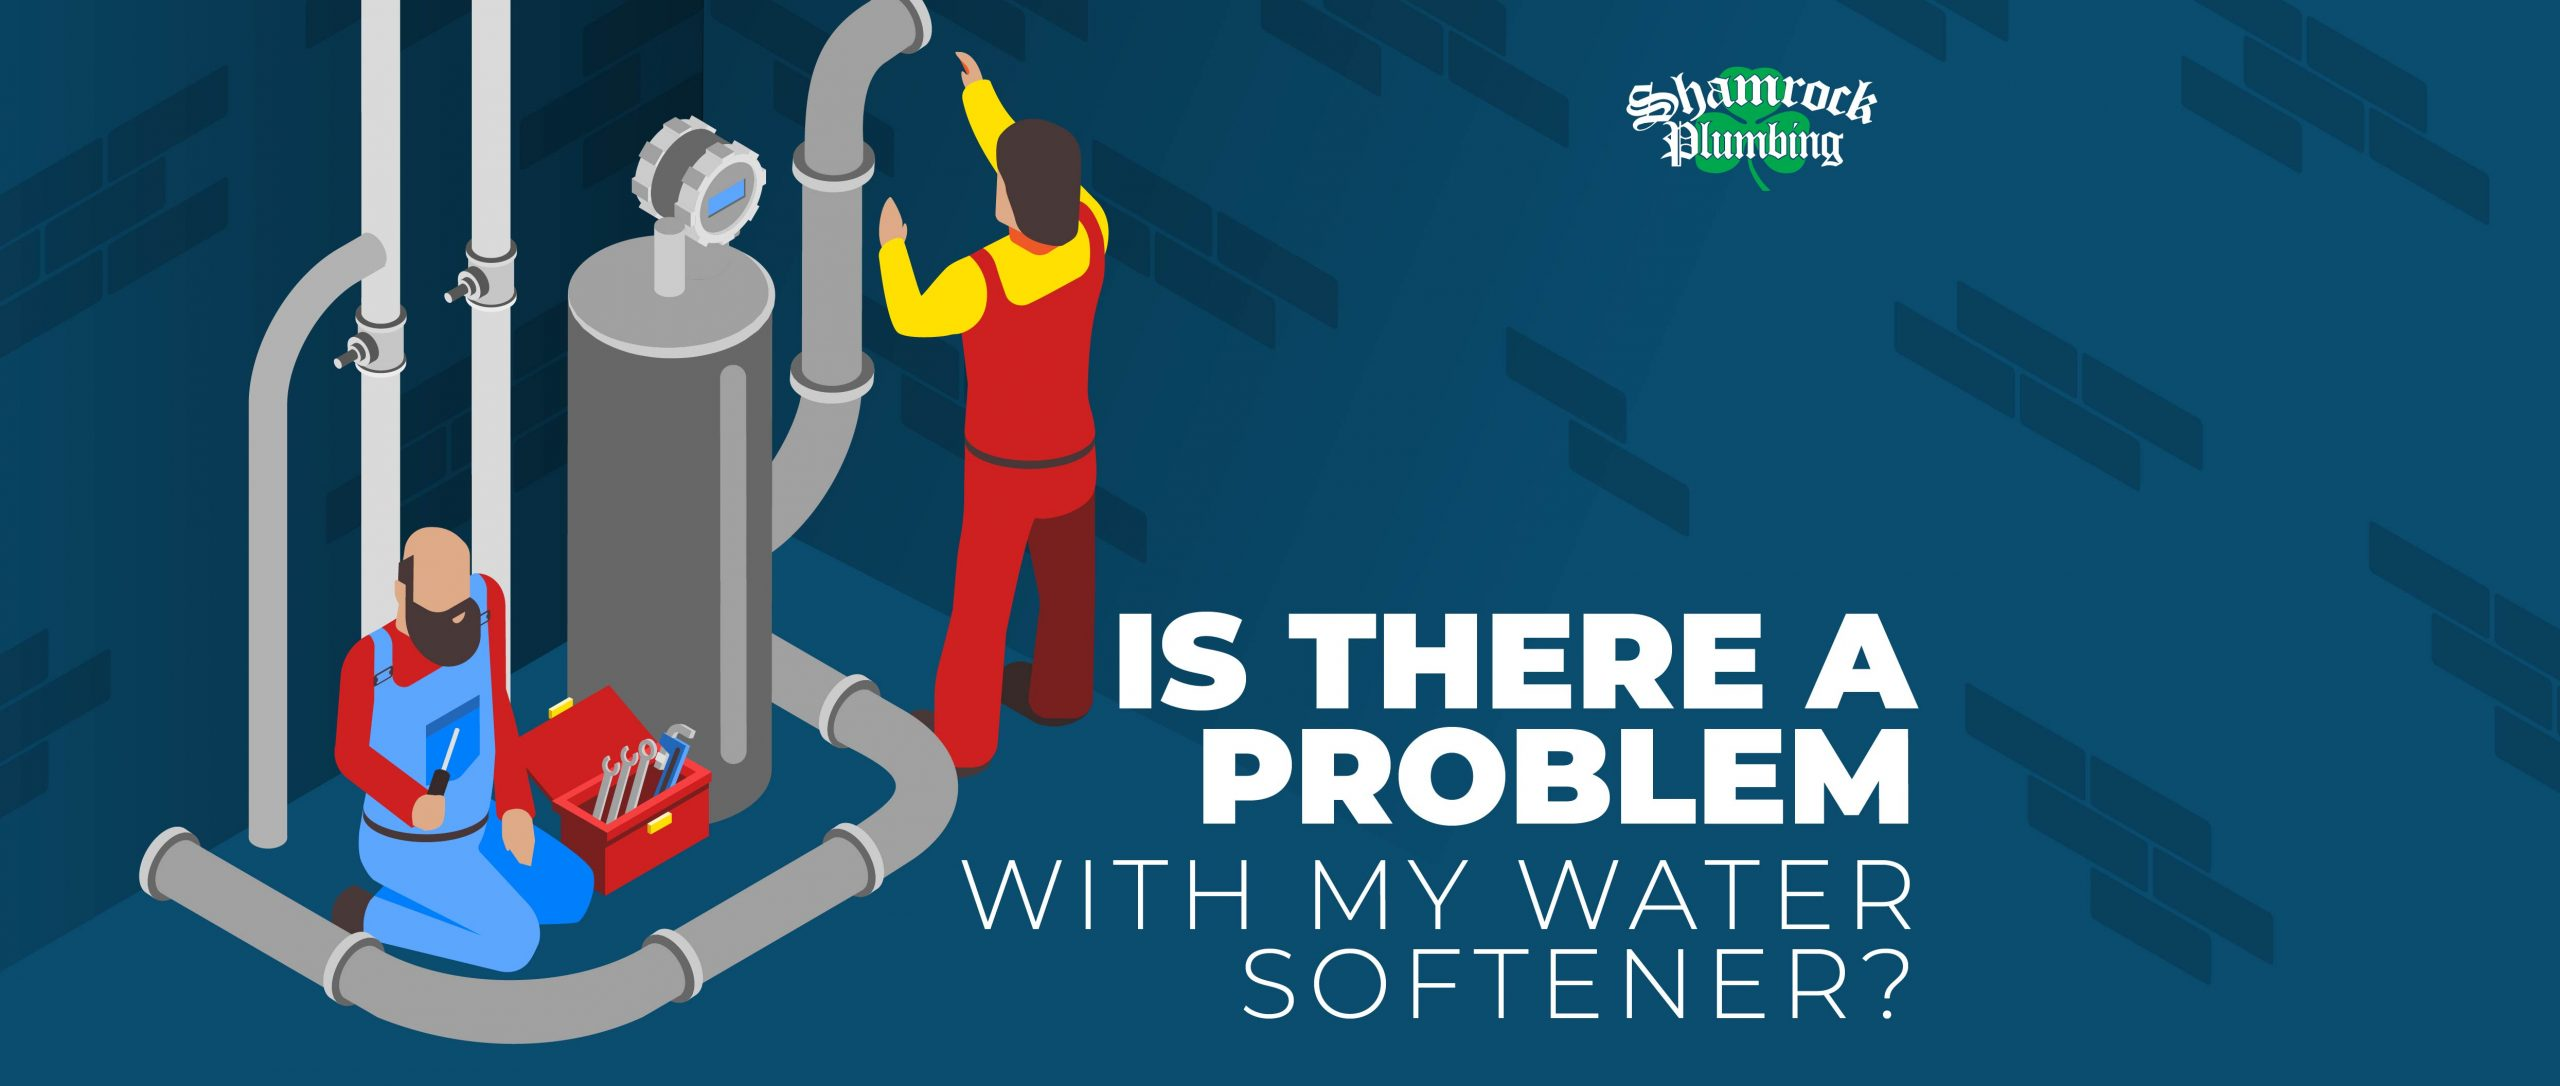 is there a problem with my water softener? cartoon men working on softener